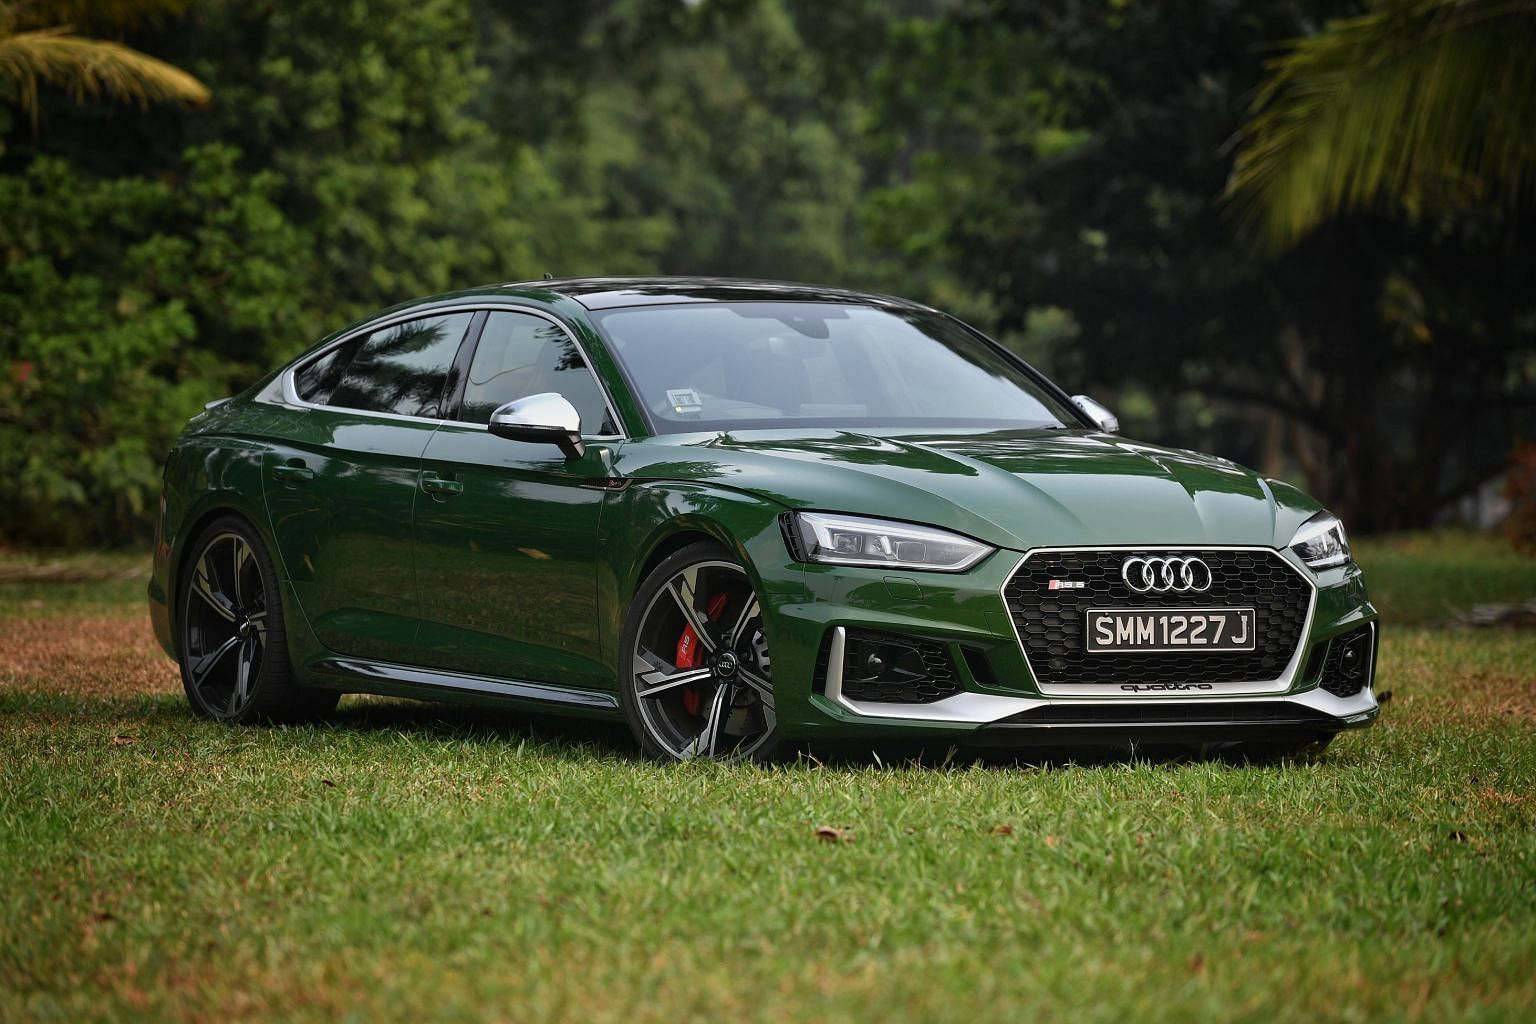 Sports variants include the Audi RS5 Sportback (above) and the Mercedes-AMG GT53 4-Door.